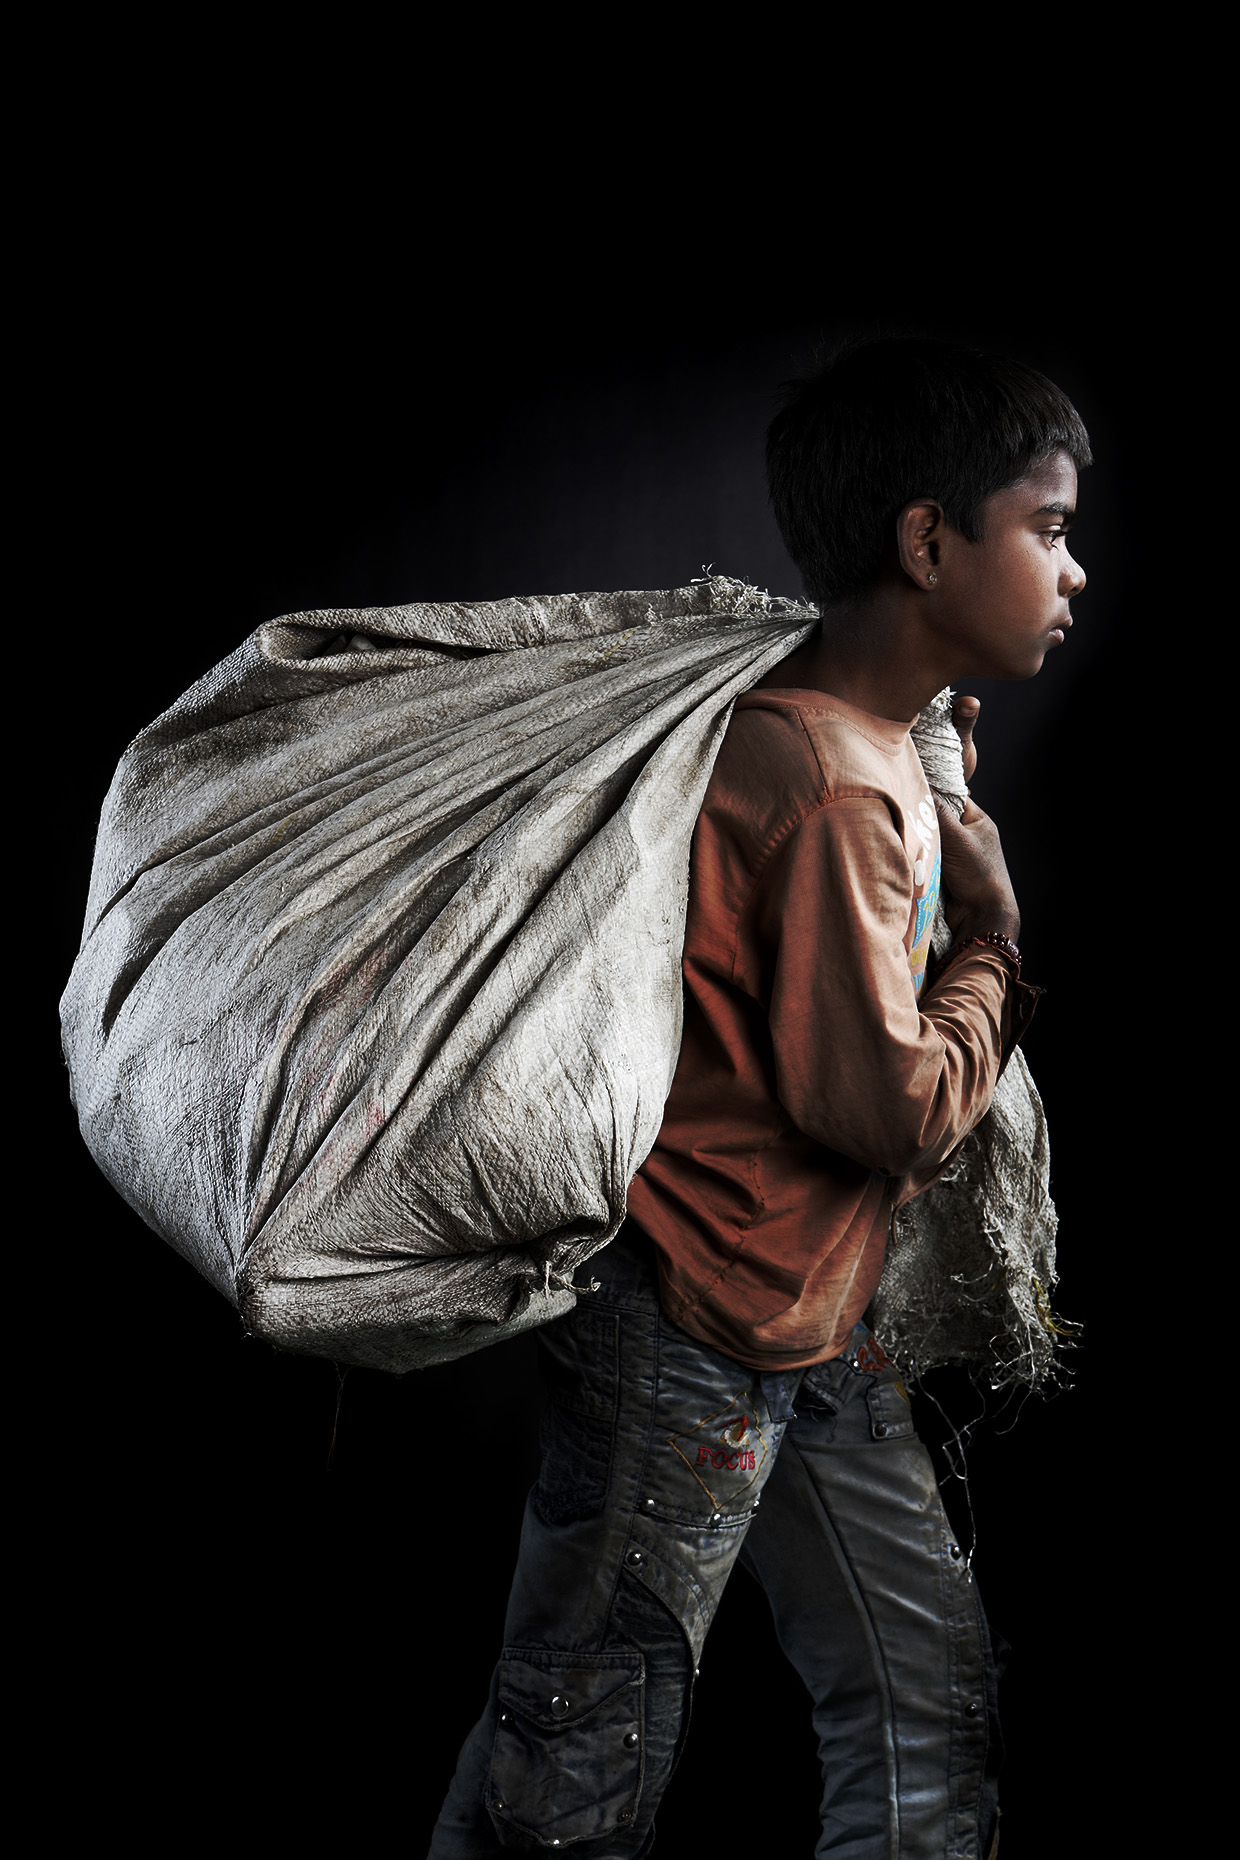 Portrait of garbage boy carrying a bag on his shoulder.